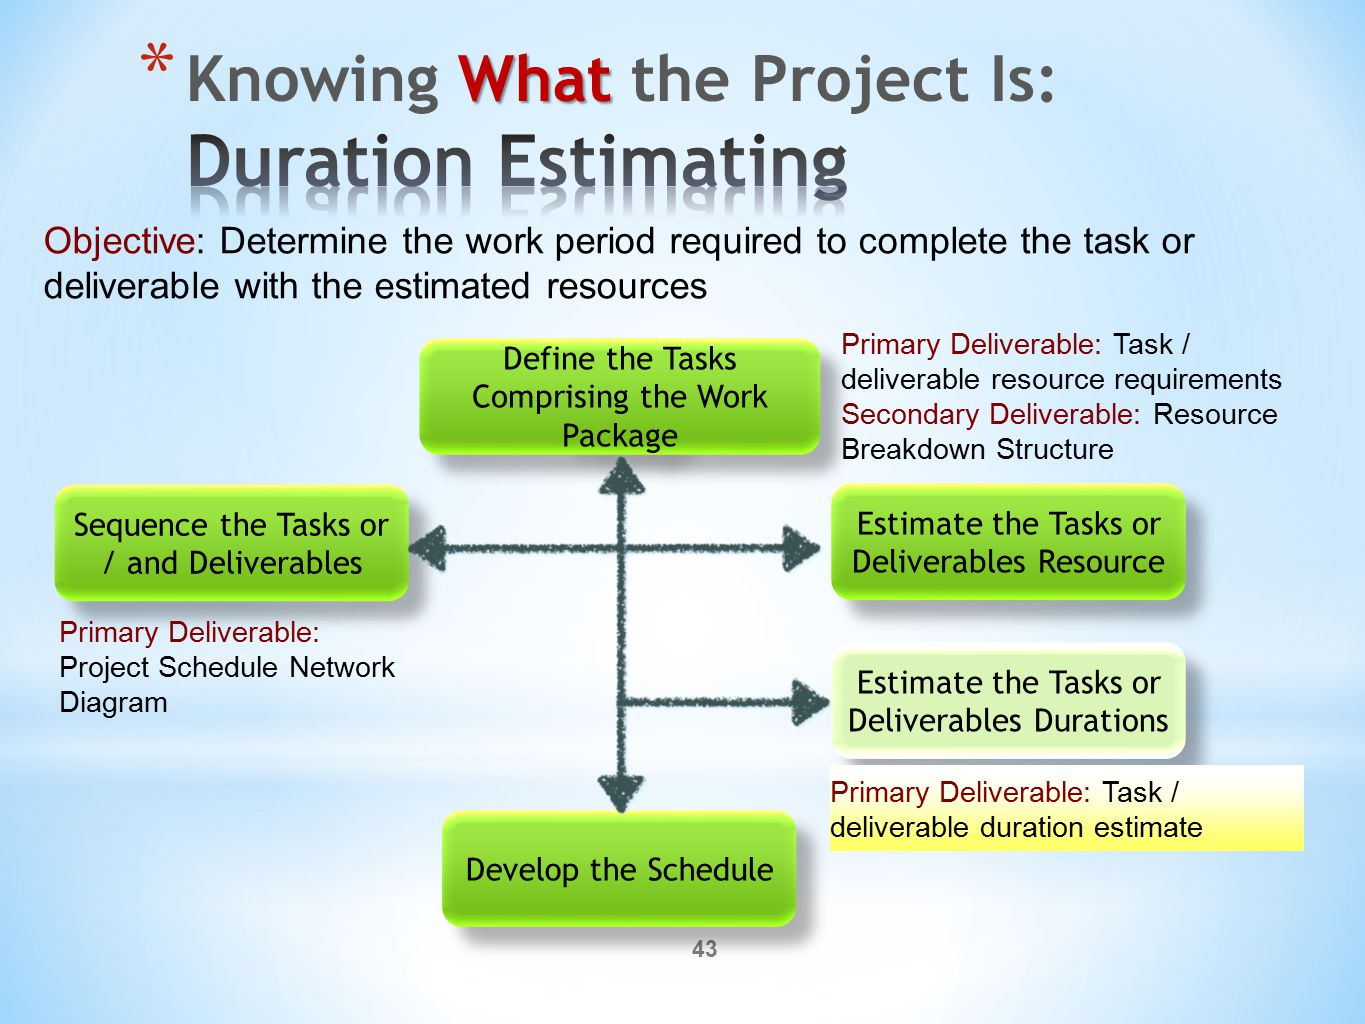 43 Define the Tasks Comprising the Work Package Sequence the Tasks or / and Deliverables Estimate the Tasks or Deliverables Resource Estimate the Tasks or Deliverables Durations Develop the Schedule Objective: Determine the work period required to complete the task or deliverable with the estimated resources Primary Deliverable: Task / deliverable resource requirements Secondary Deliverable: Resource Breakdown Structure Primary Deliverable: Project Schedule Network Diagram Primary Deliverable: Task / deliverable duration estimate